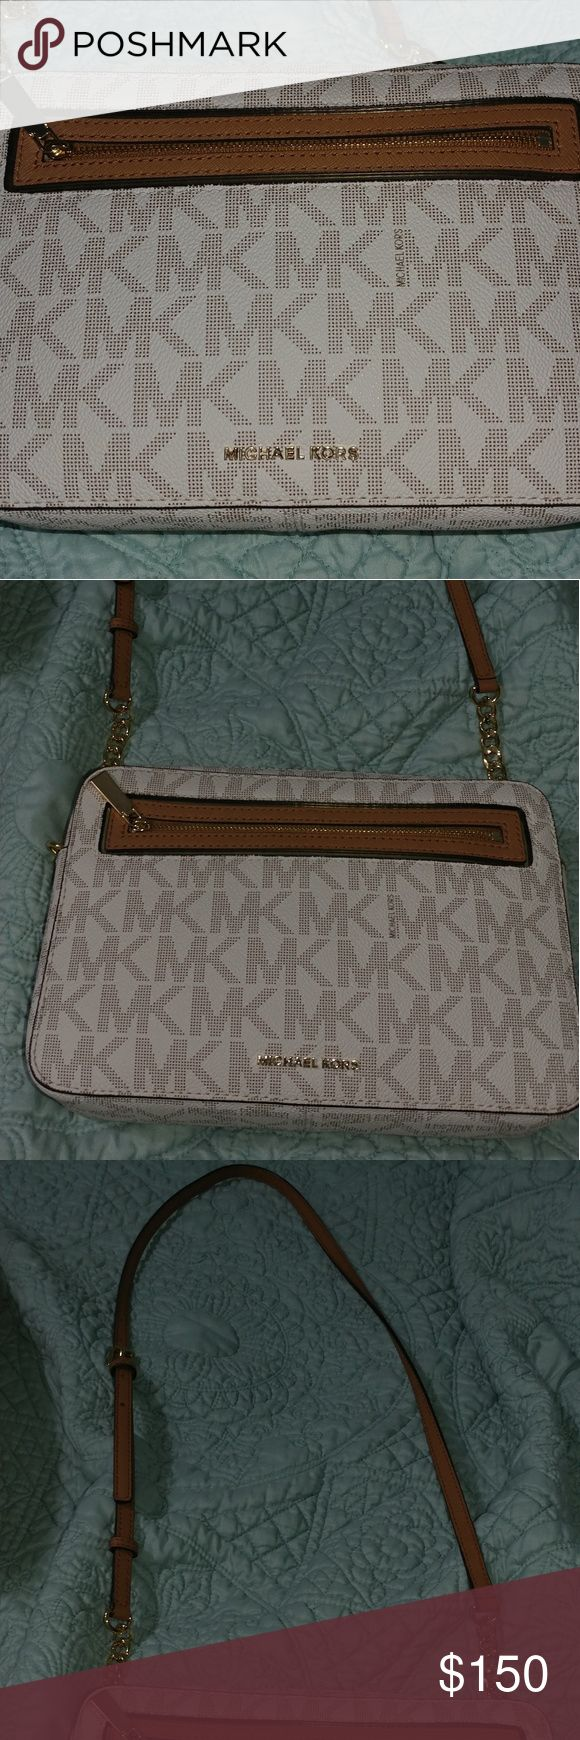 🎉FINAL SALE🎉 Michael Kors crossbody handbag Barely used, mint condition. Need cash for marriage. Michael Kors Bags Crossbody Bags